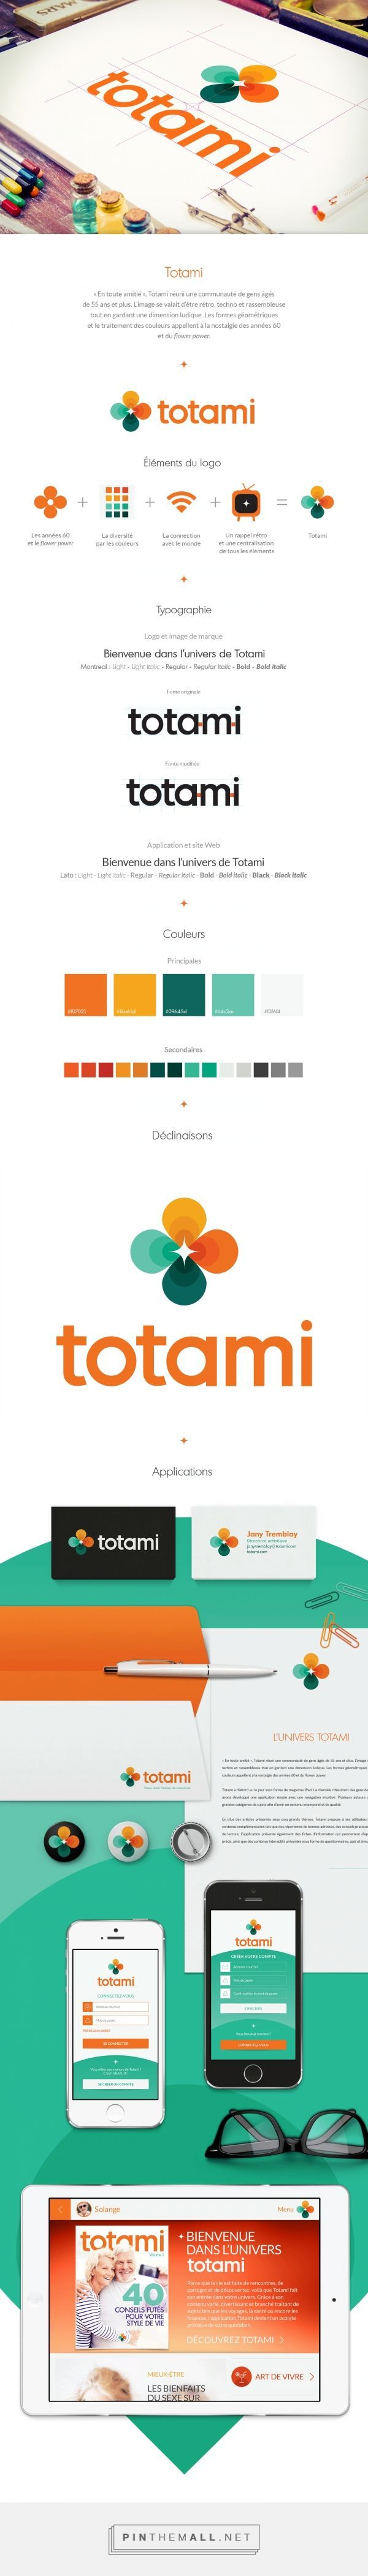 Totami Branding on Behance alickreative mahendiali